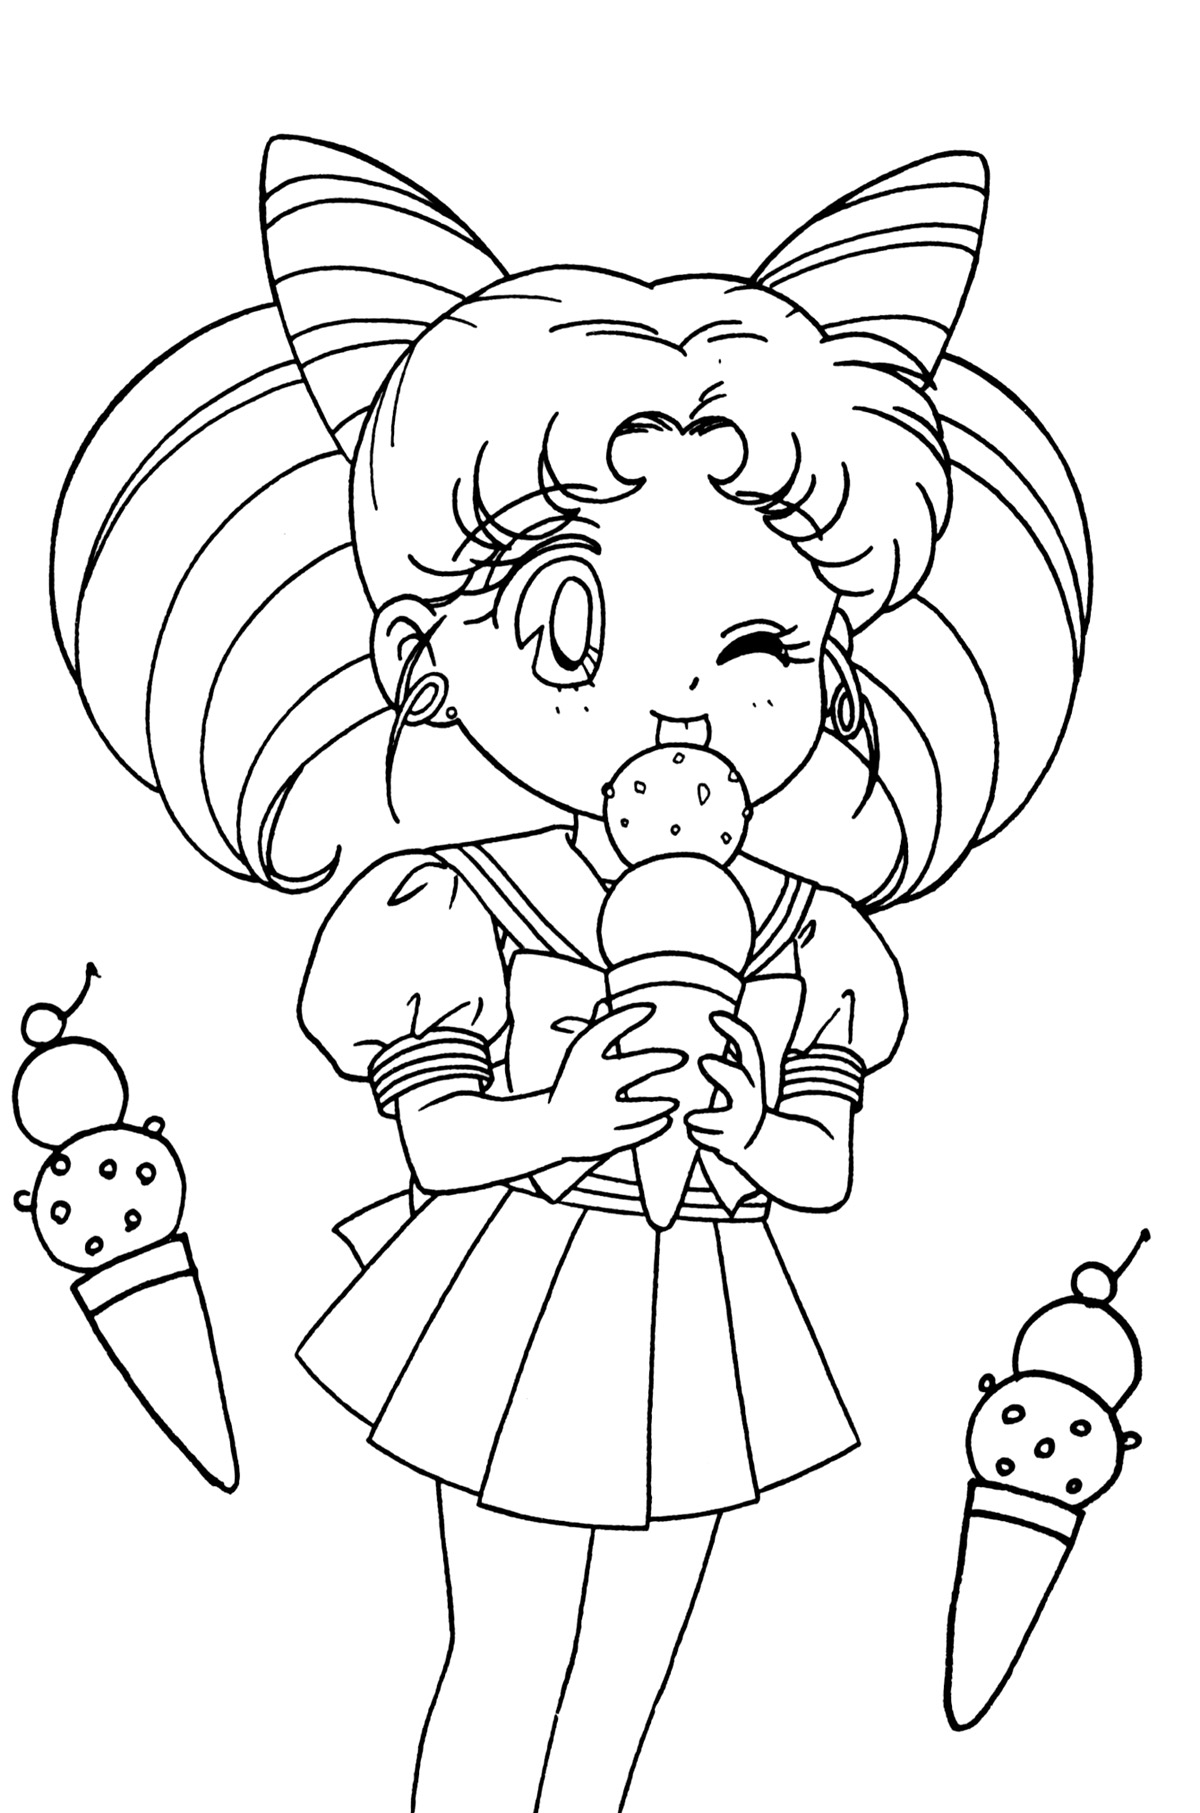 Sailor Moon Coloring Pages At Getcolorings